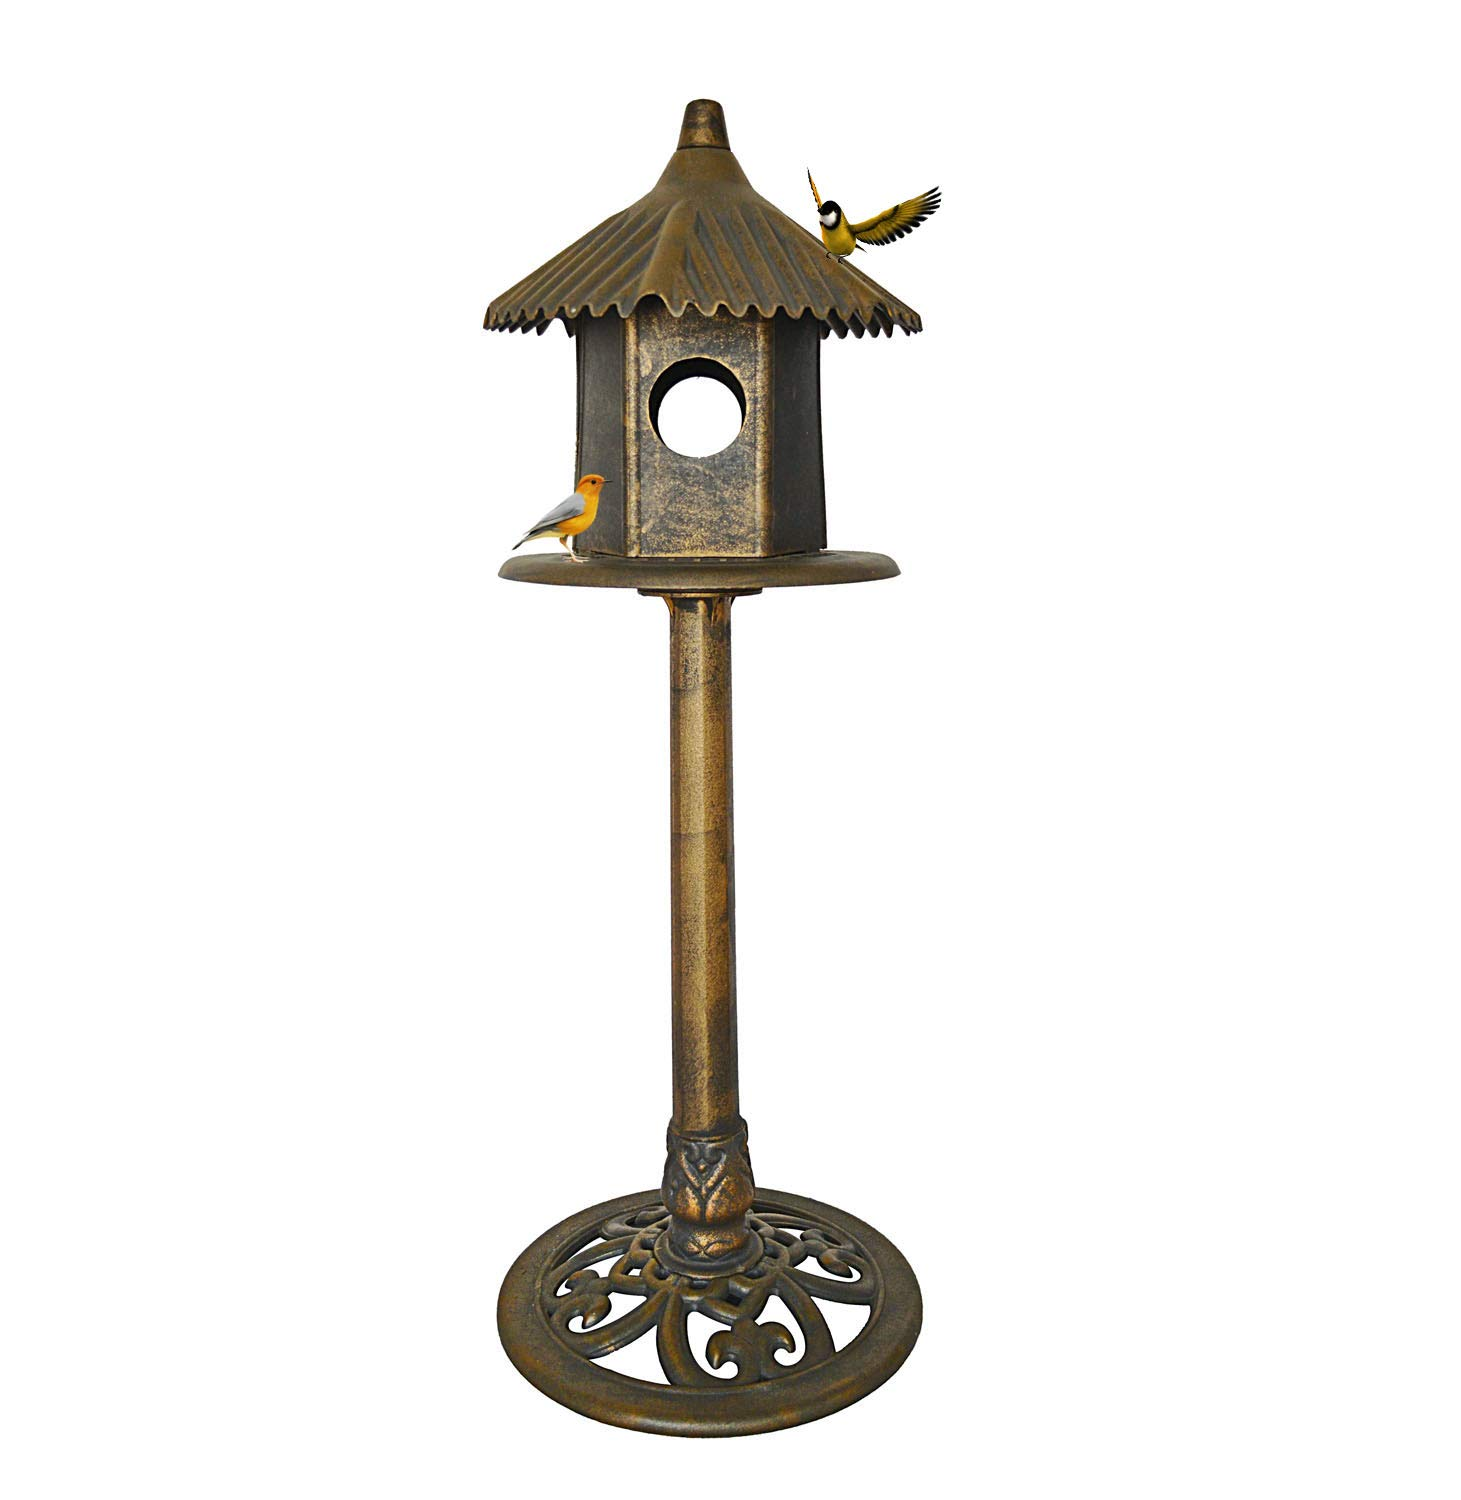 PierSurplus Bird House for Outside Outdoor Free-Standing Classic Heights with Domed Roof and Pedestal Base